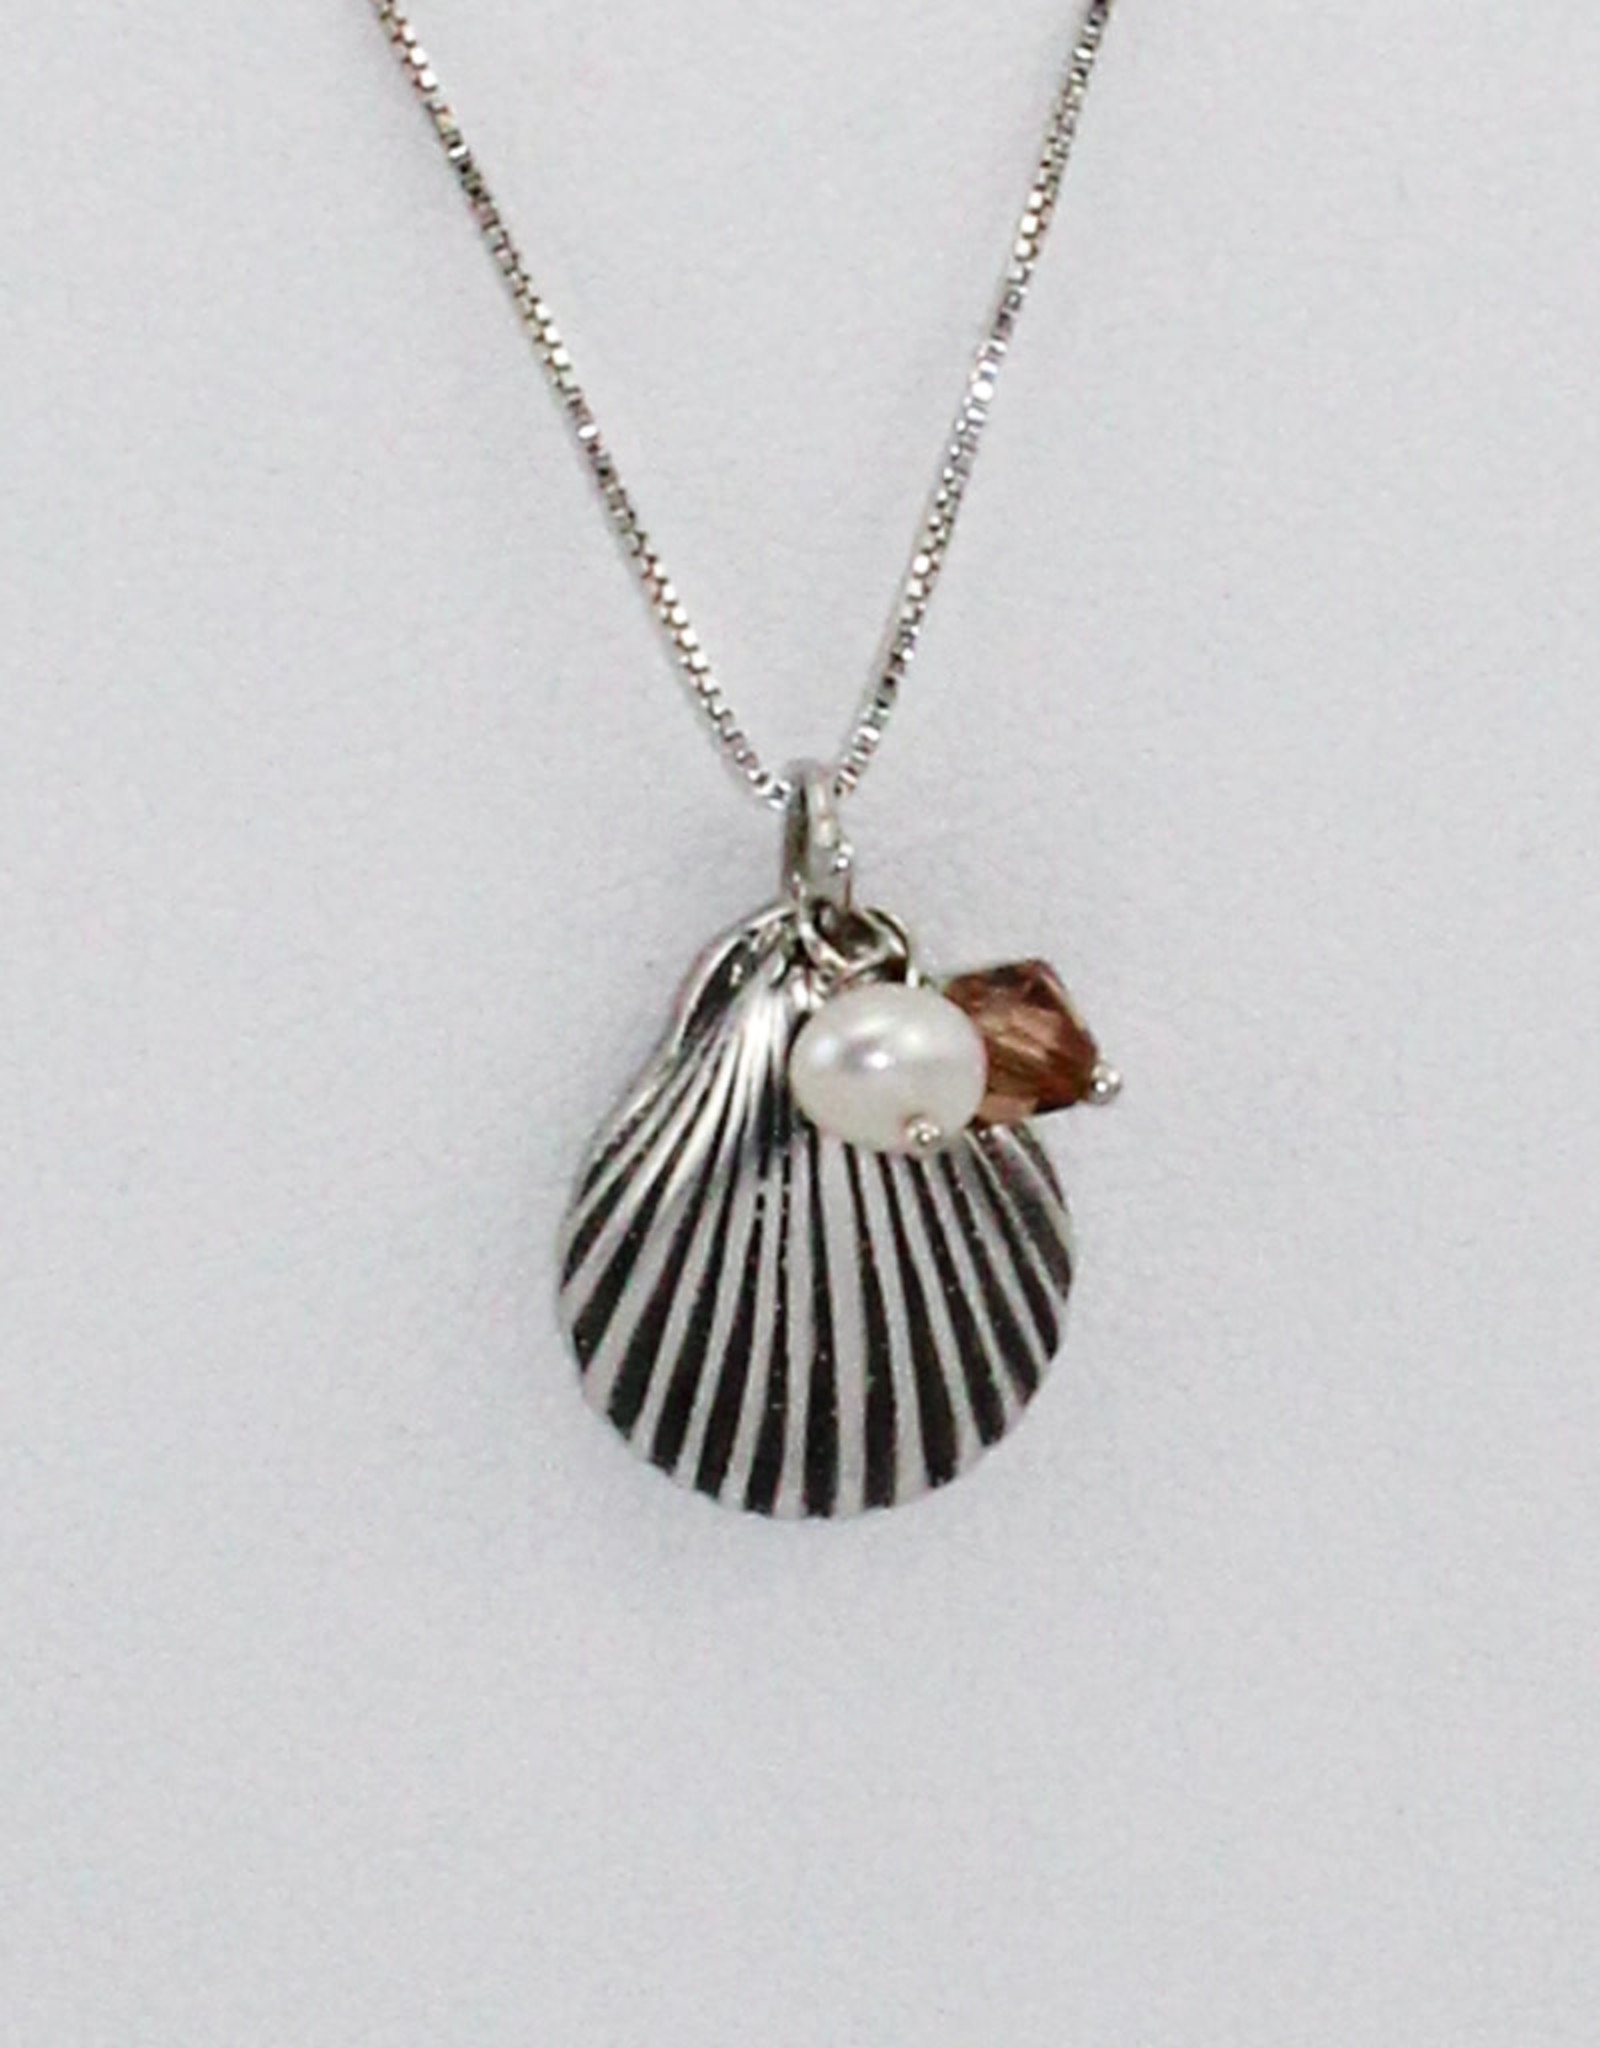 Adorned by Becca Shell Pendant w/sterling chain